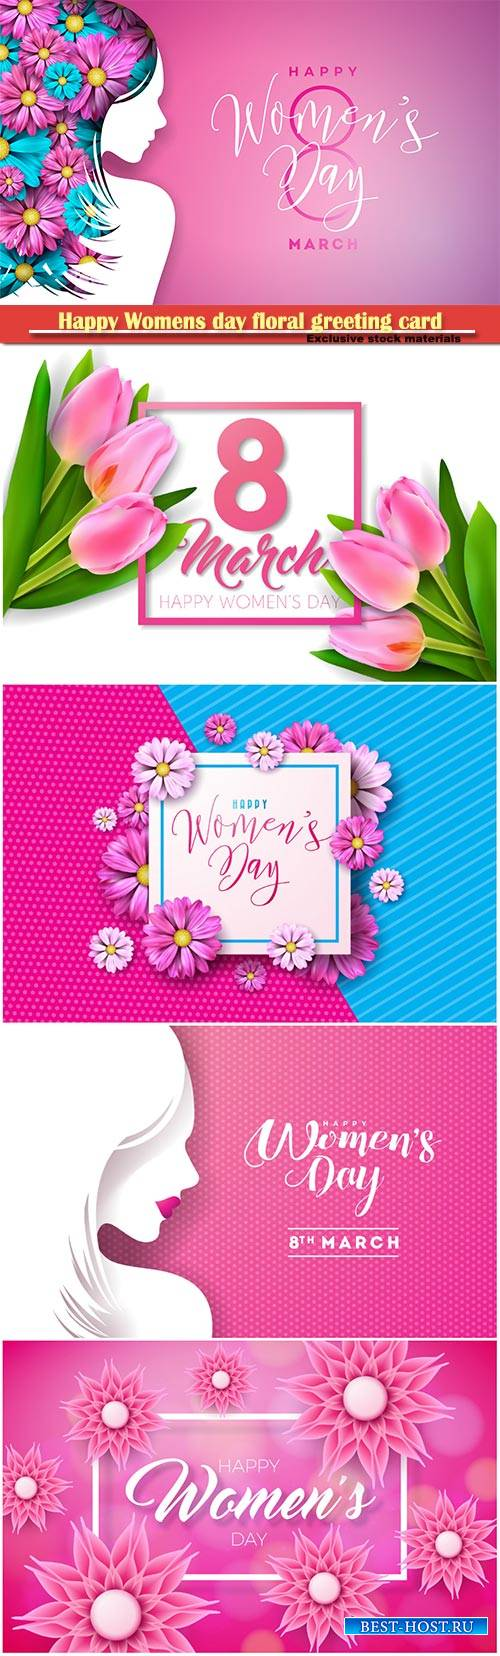 Happy Womens day floral greeting card, international female holiday Illustr ...